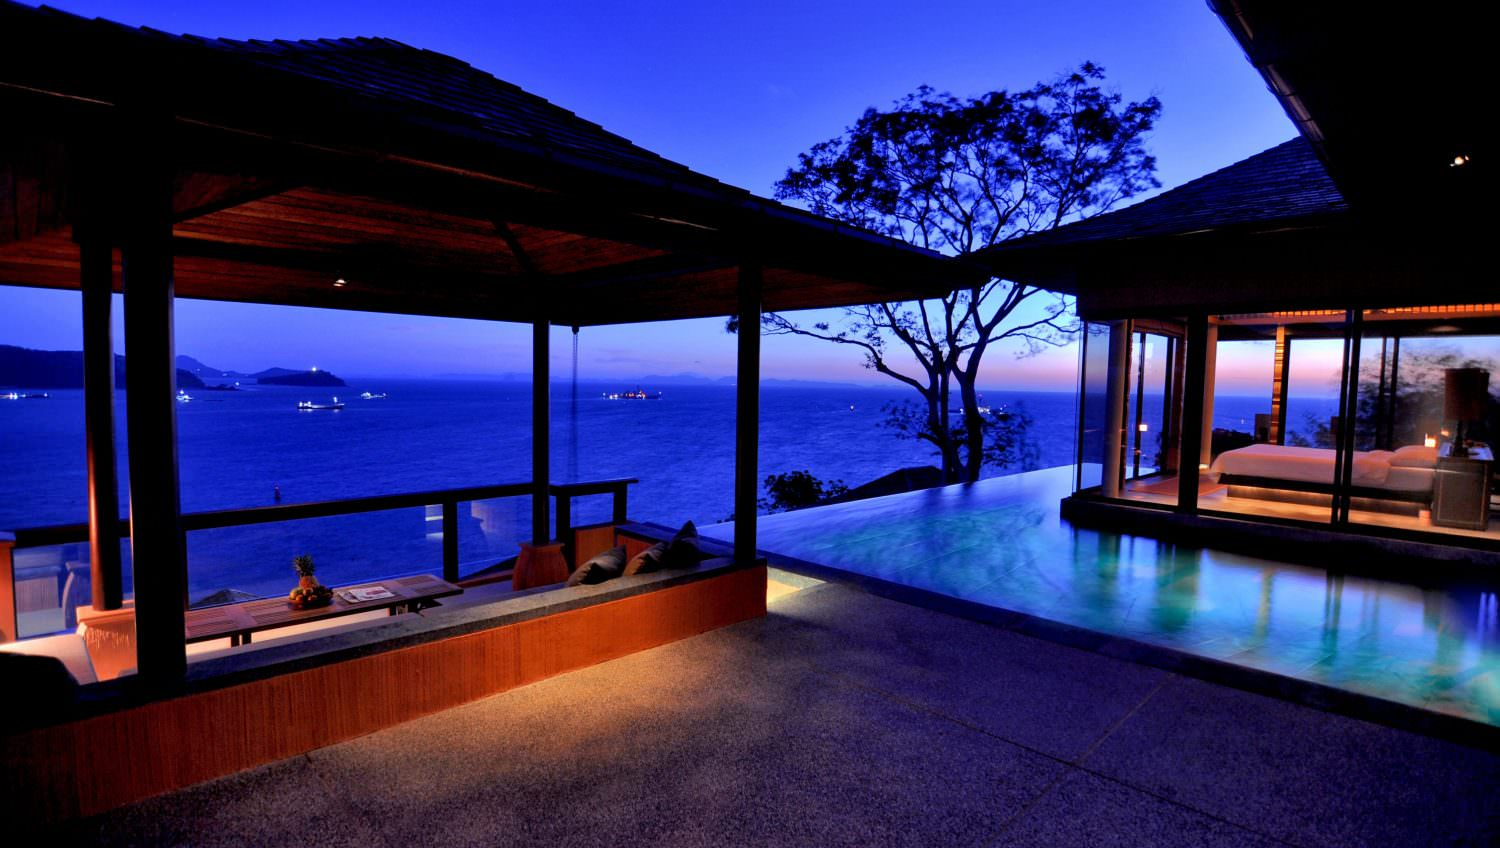 6-One-Bedroom-Luxury-Pool-Villa-Ocean-View-B-Sri-Panwa-Hotel-Phuket-Resort-Spa